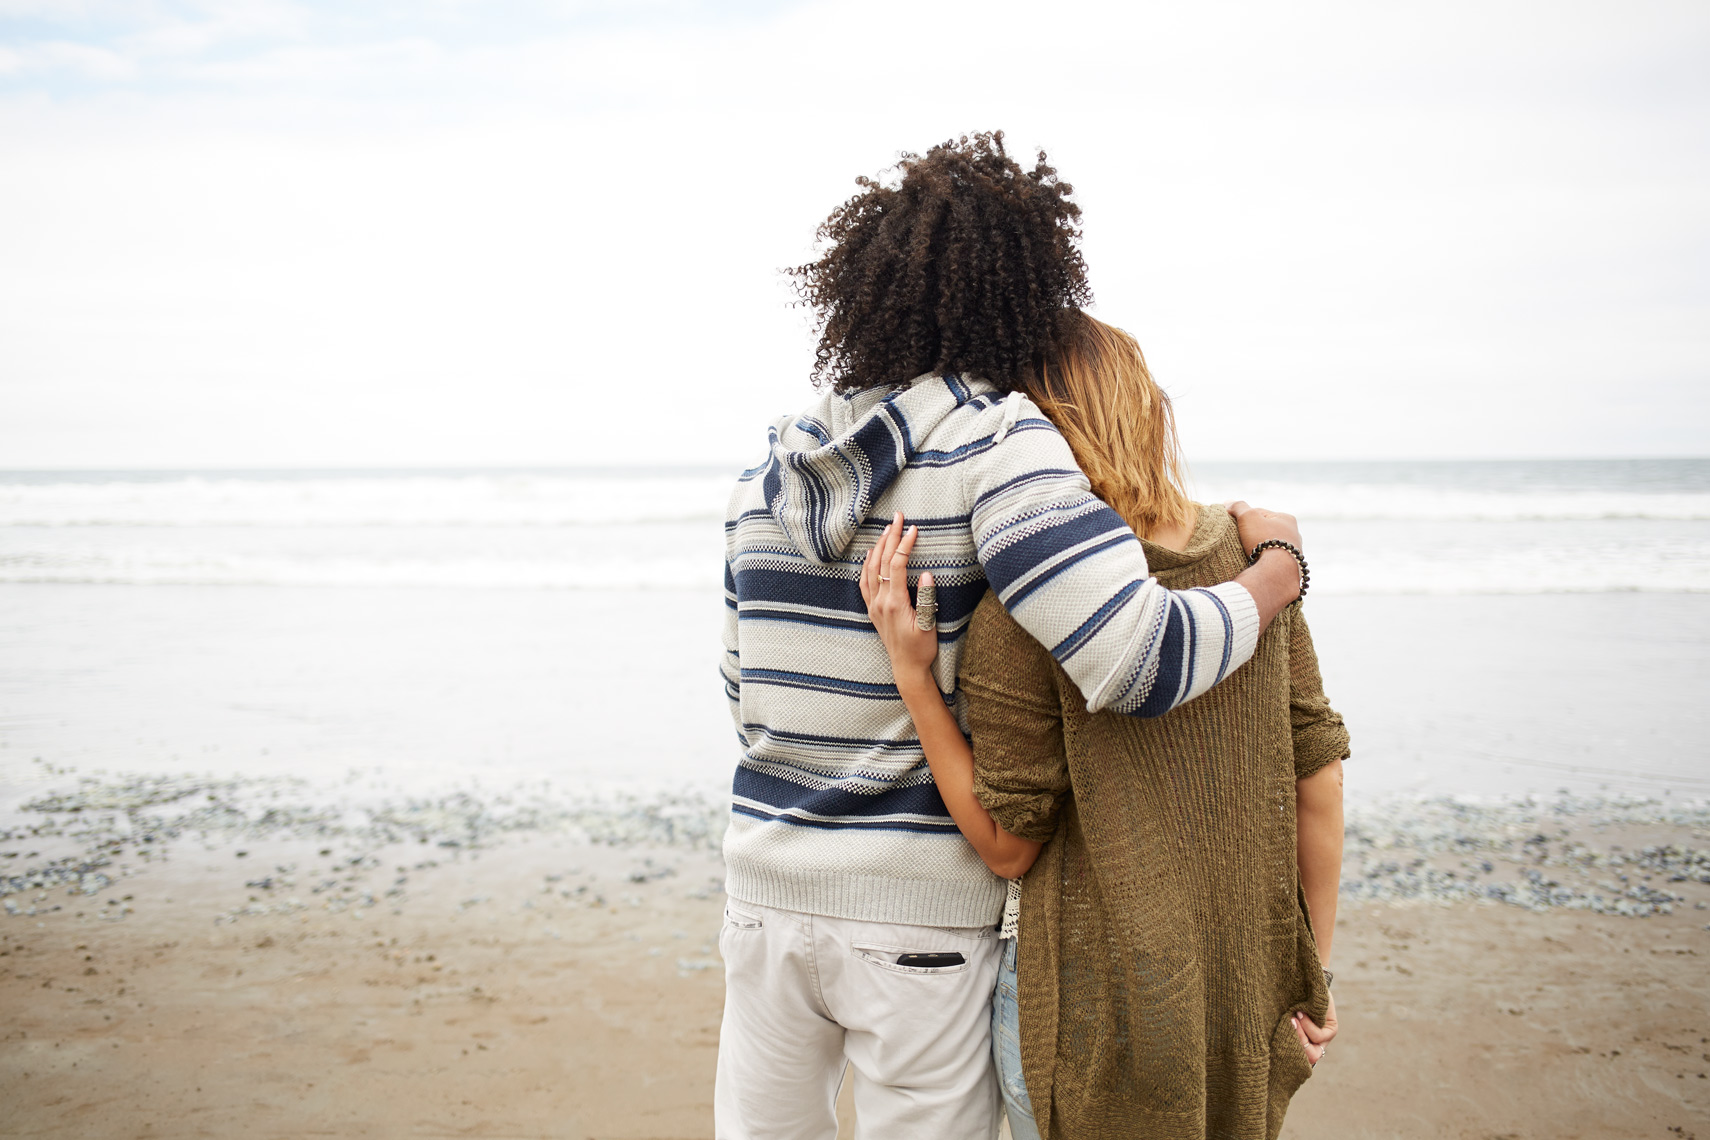 couple on the beach facing the ocean hugging, african american man, blonde white woman, stinson beach, lifestyle photography, commercial photography, advertising photography, san francisco